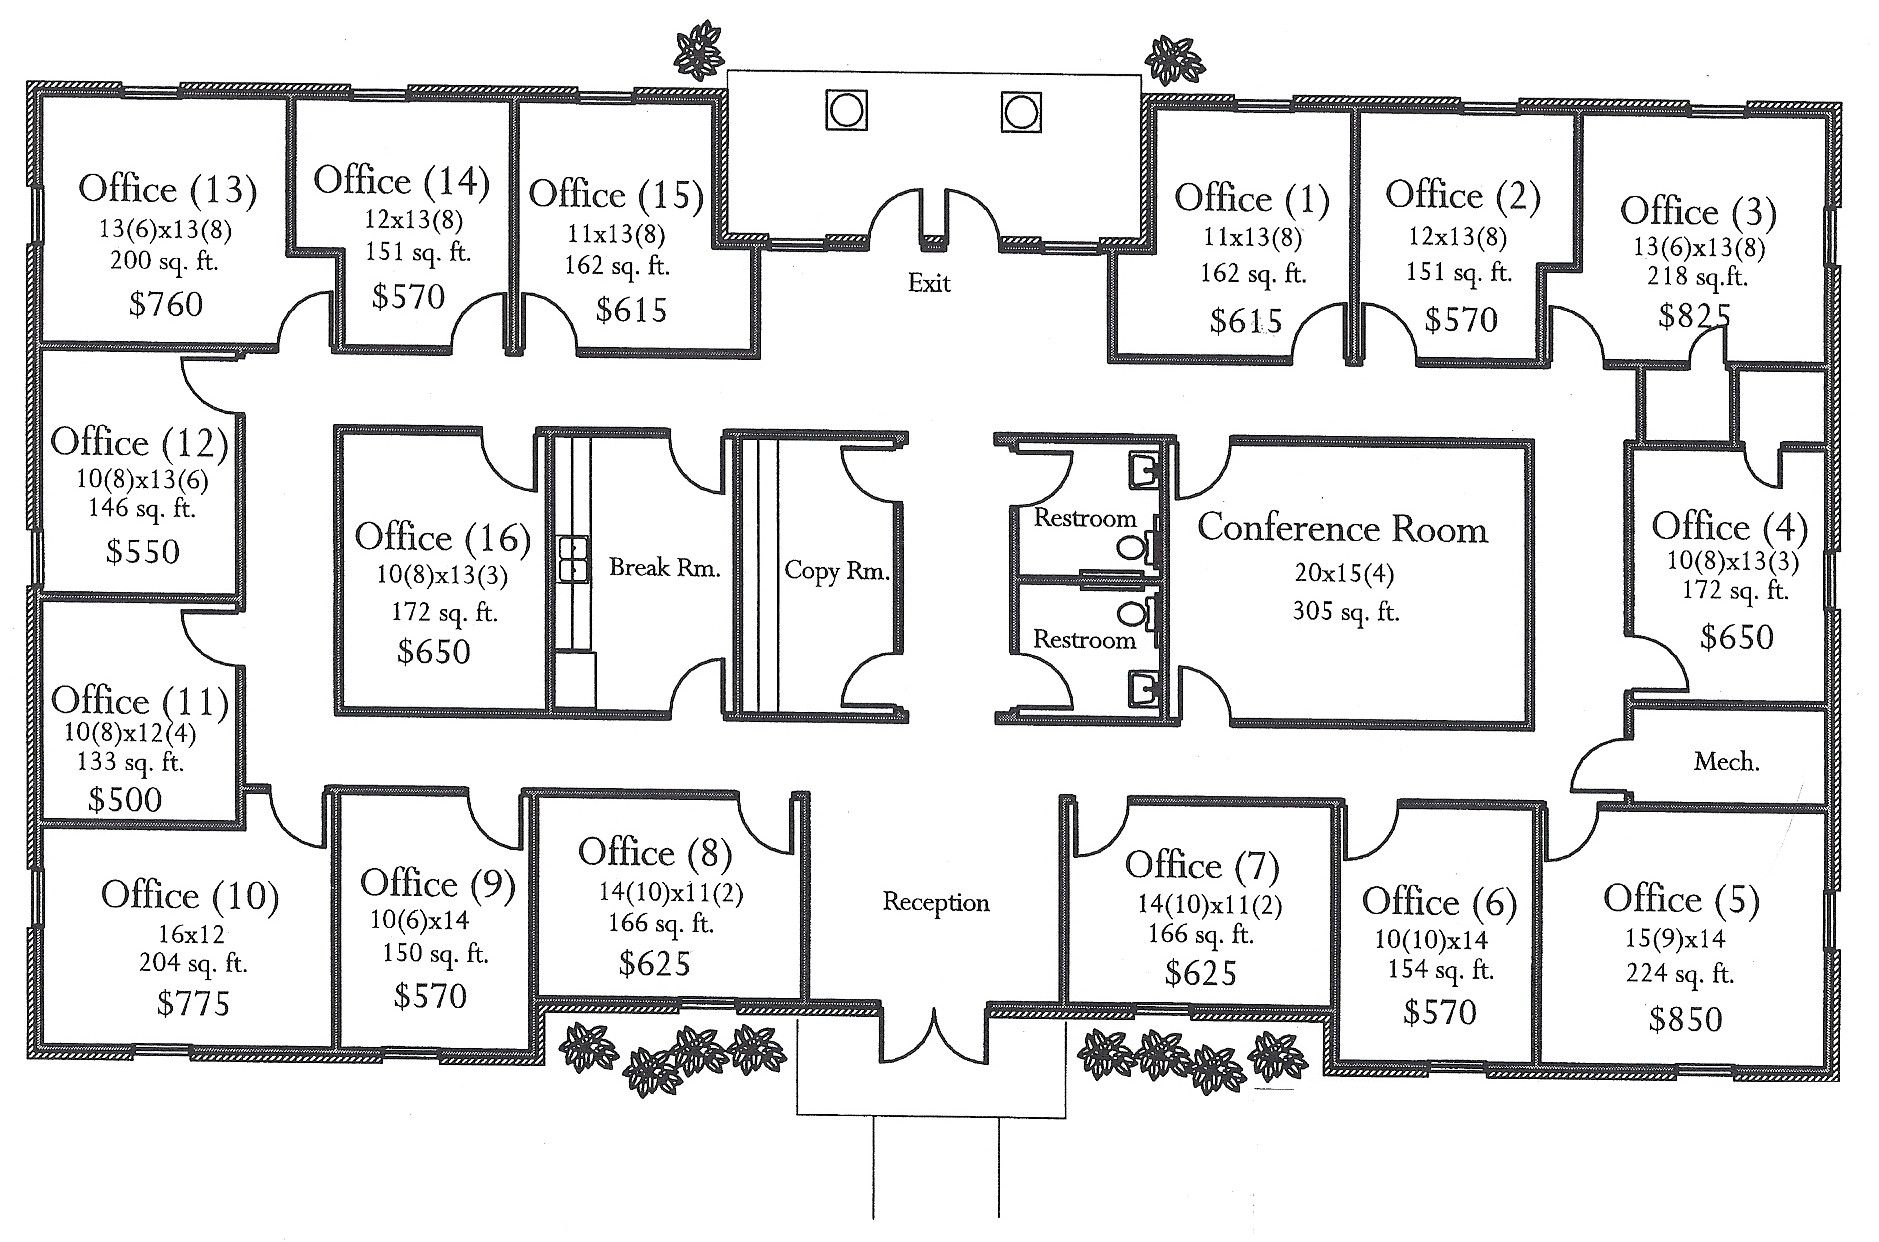 Floor plan for small medical office evstudio architect for Two story office building plans